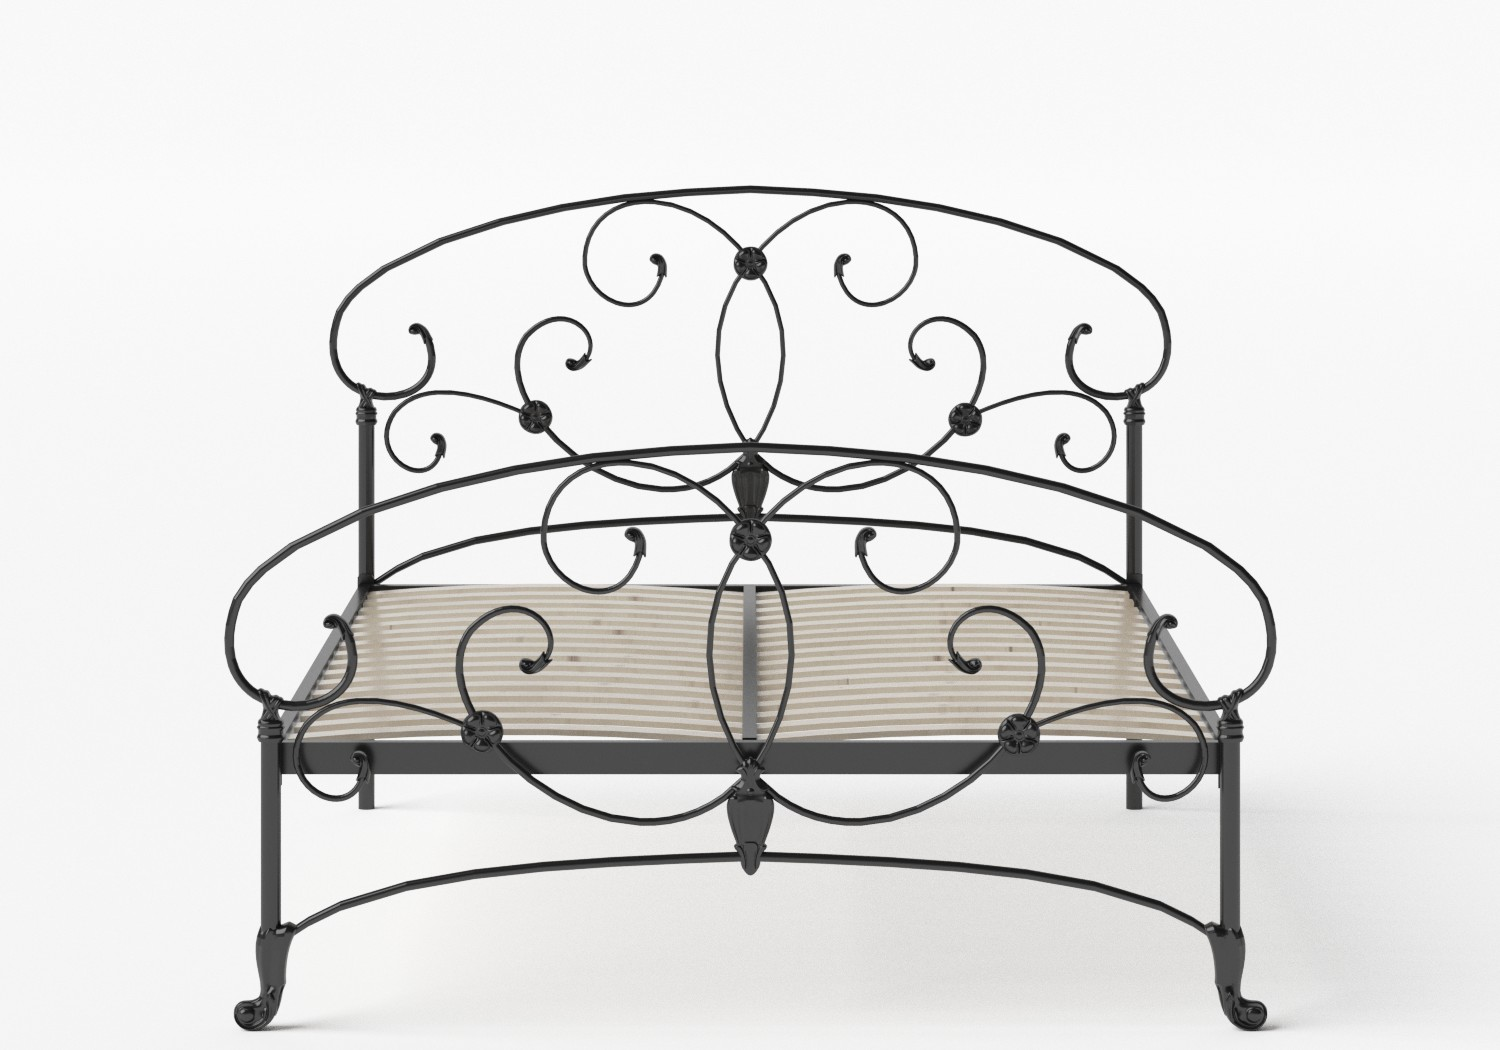 Arigna Iron/Metal Bed in Satin Black shown with slatted frame